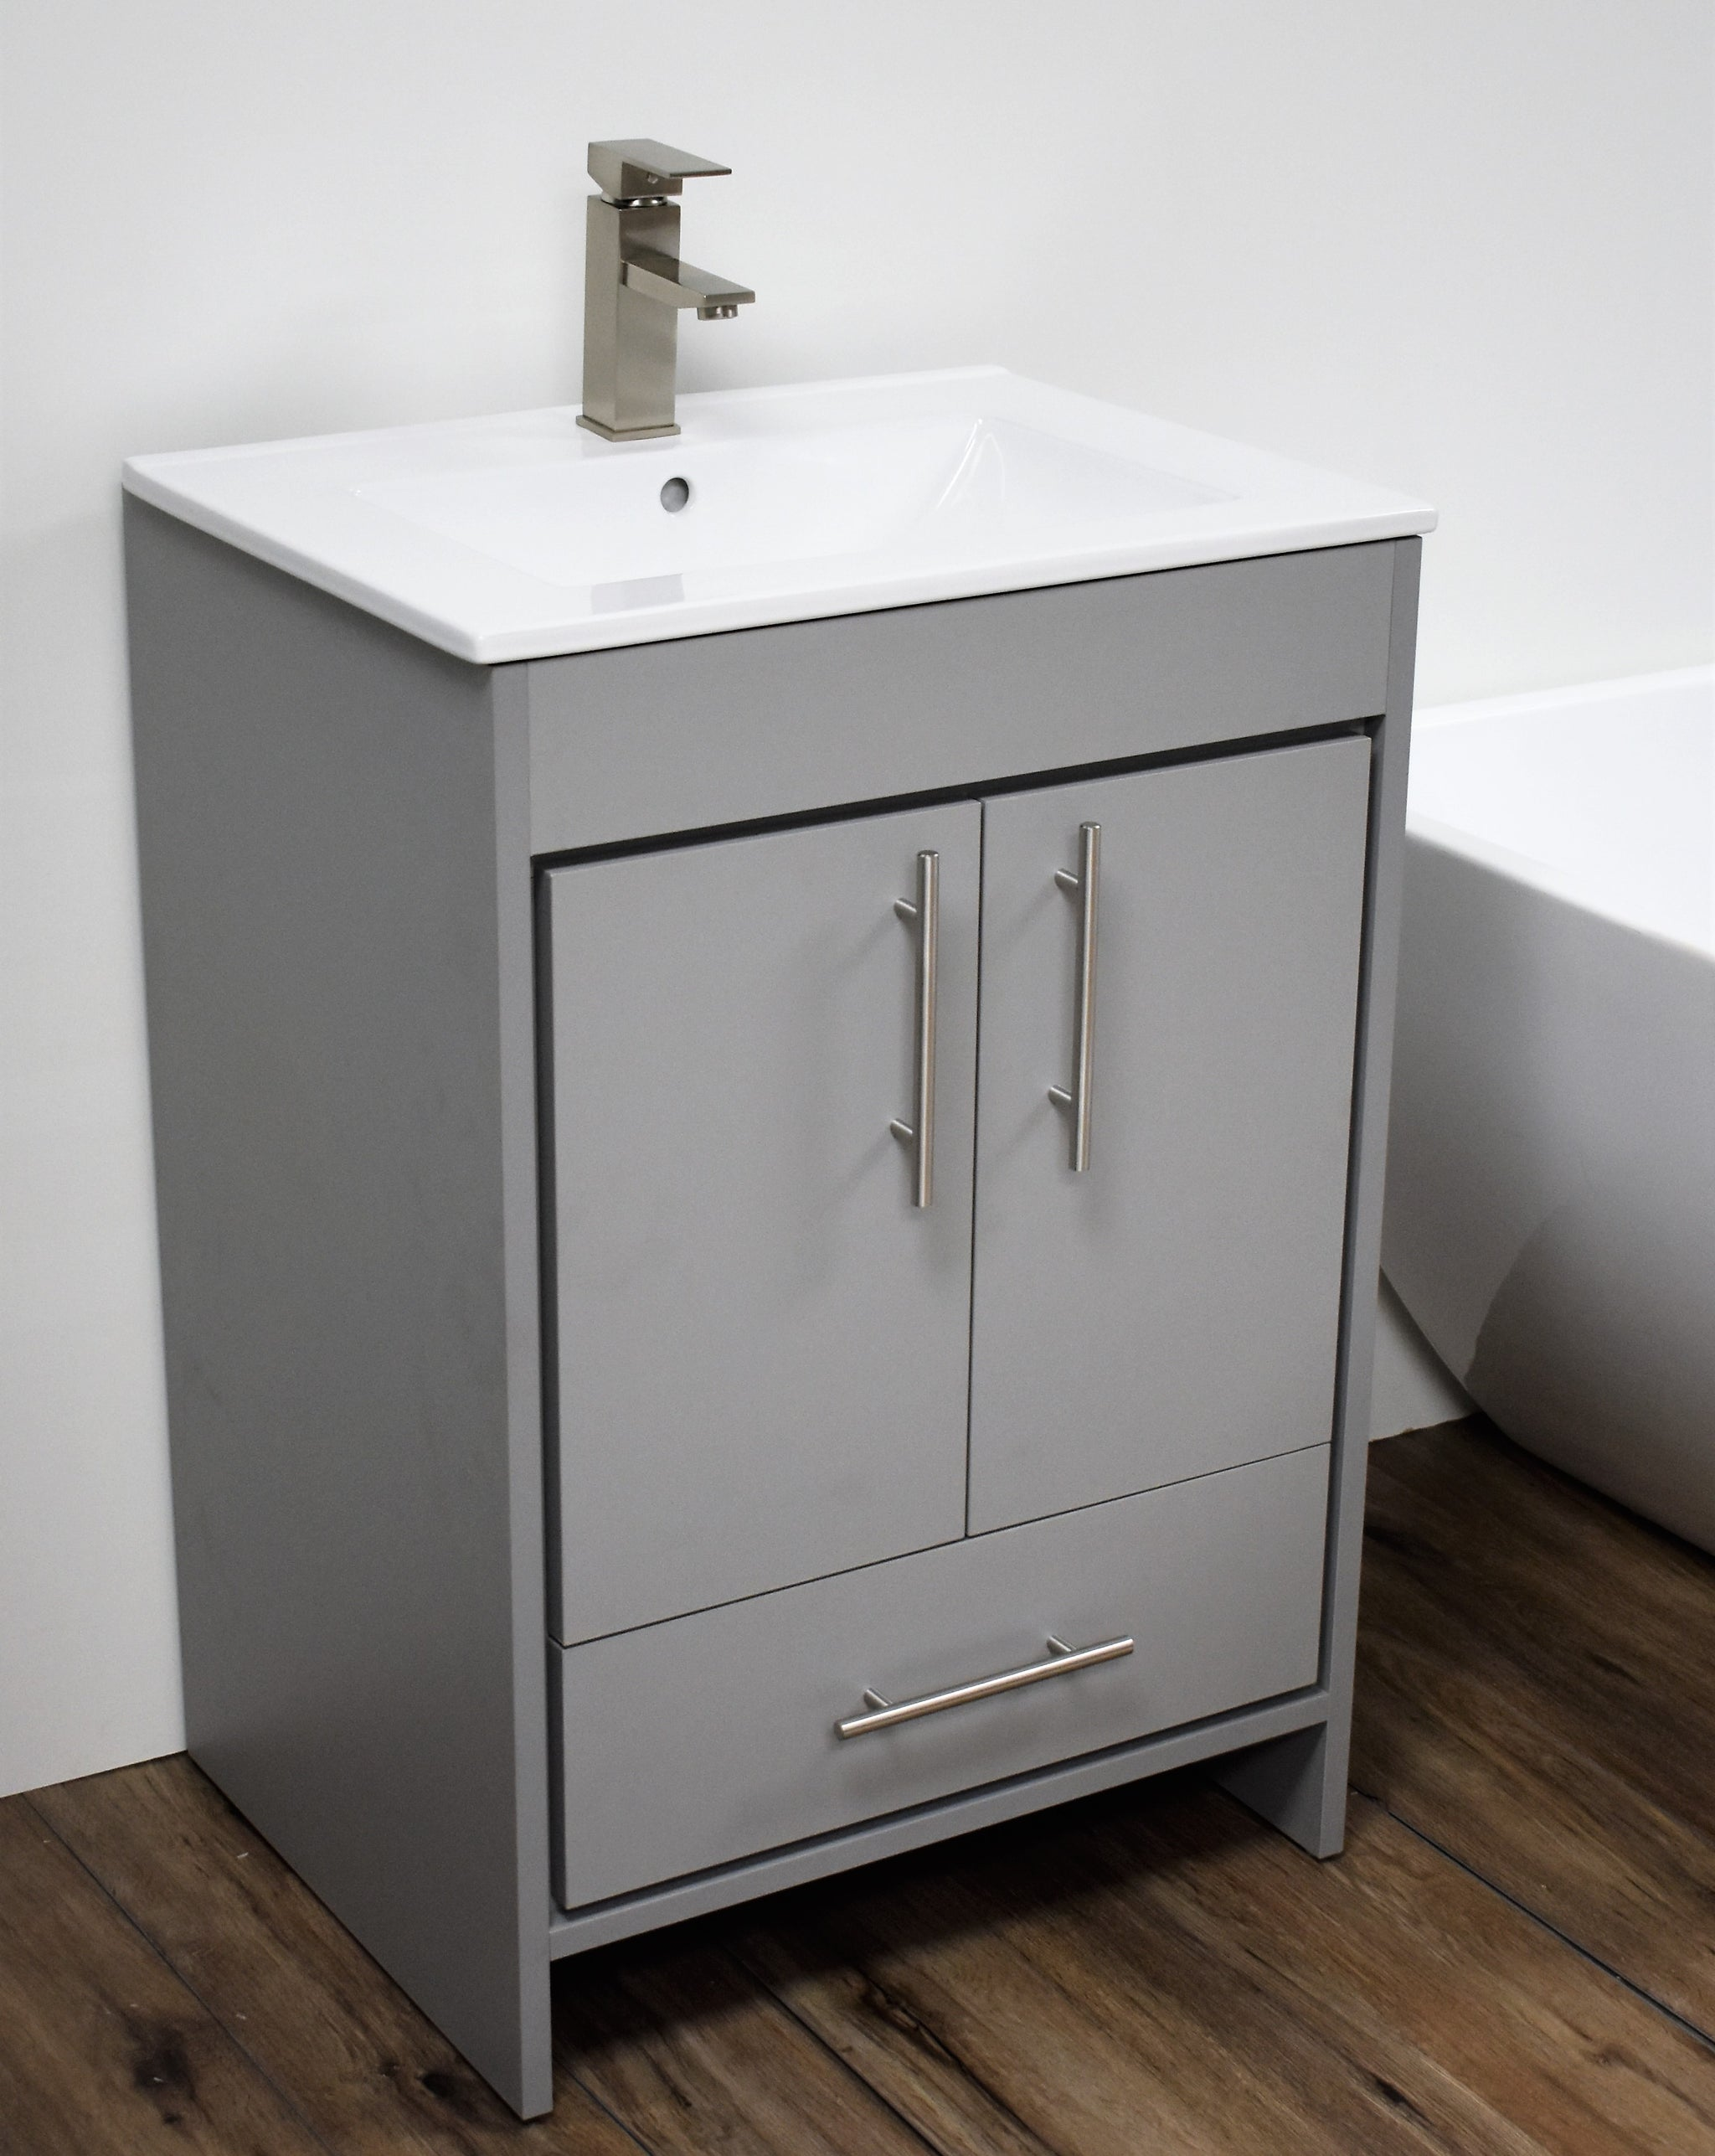 "Pacific 24"" Modern Bathroom Vanity in Grey with Integrated Ceramic Top and Brushed Nickel Round Handles"